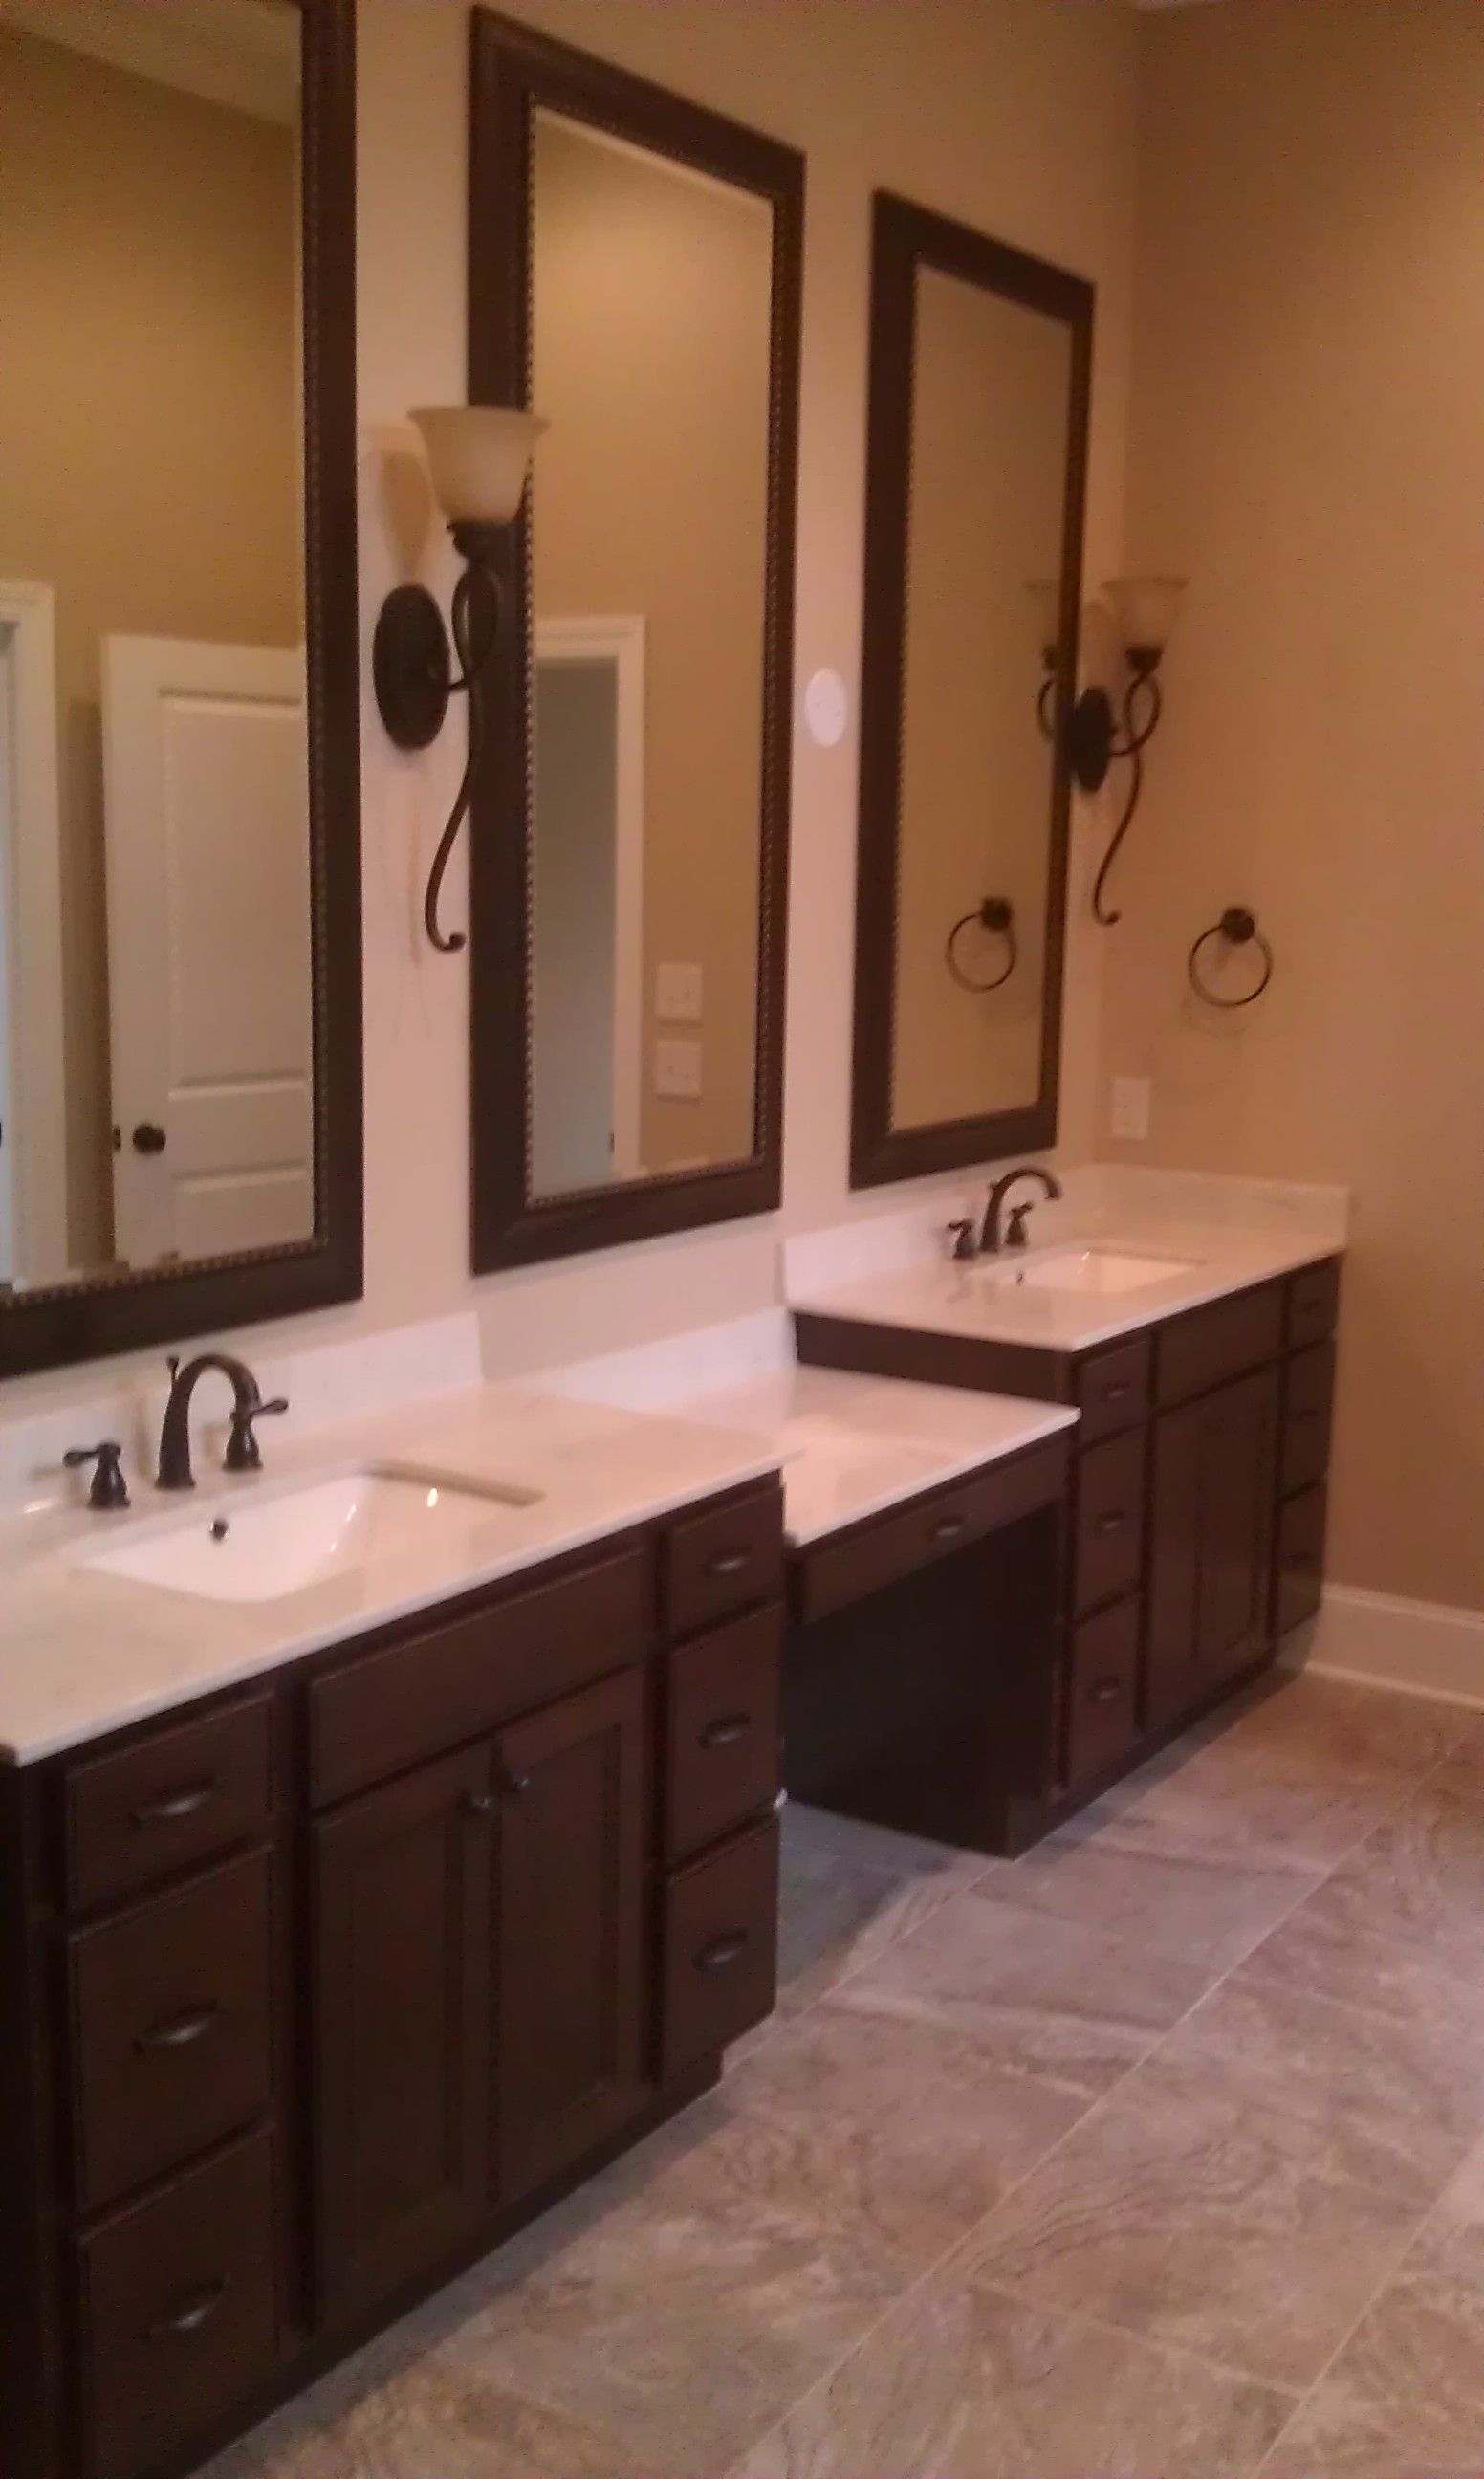 Master Bath Vanity Cabinet   Homecrest Cabinetry, Jordan Maple Door, Bison  Ebony Glaze Master